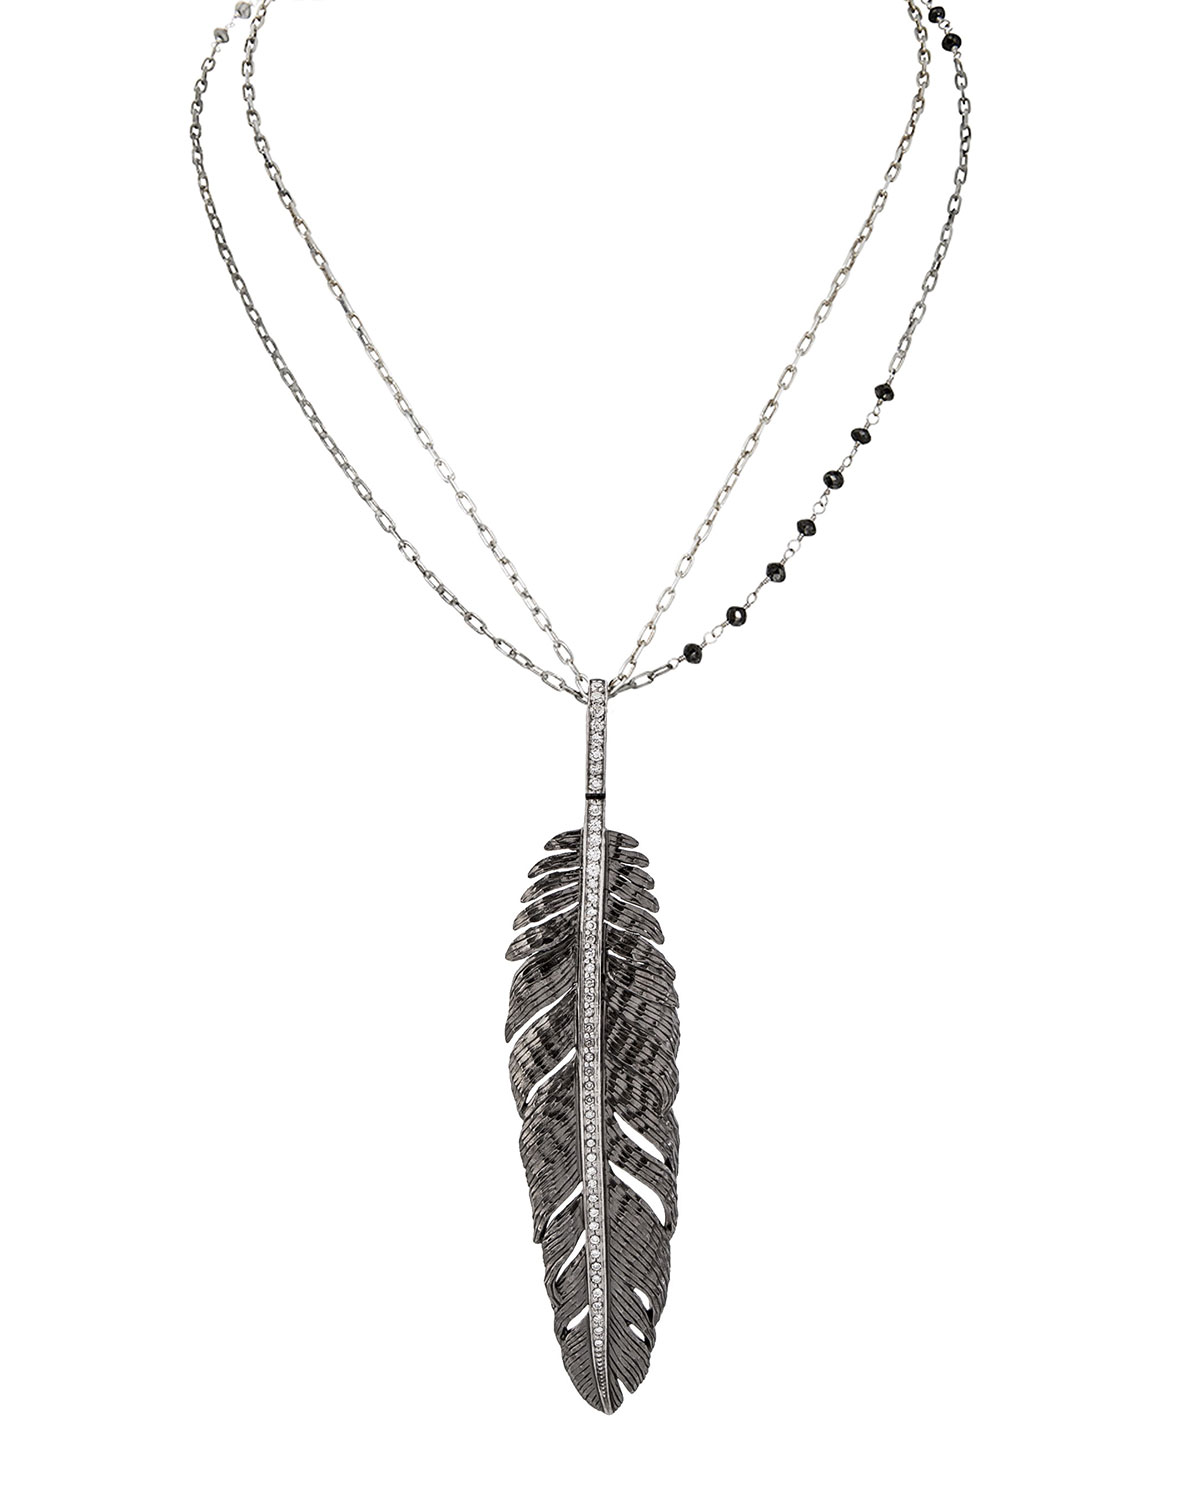 Rhodium-Plated Silver Feather Pendant Necklace with Diamonds